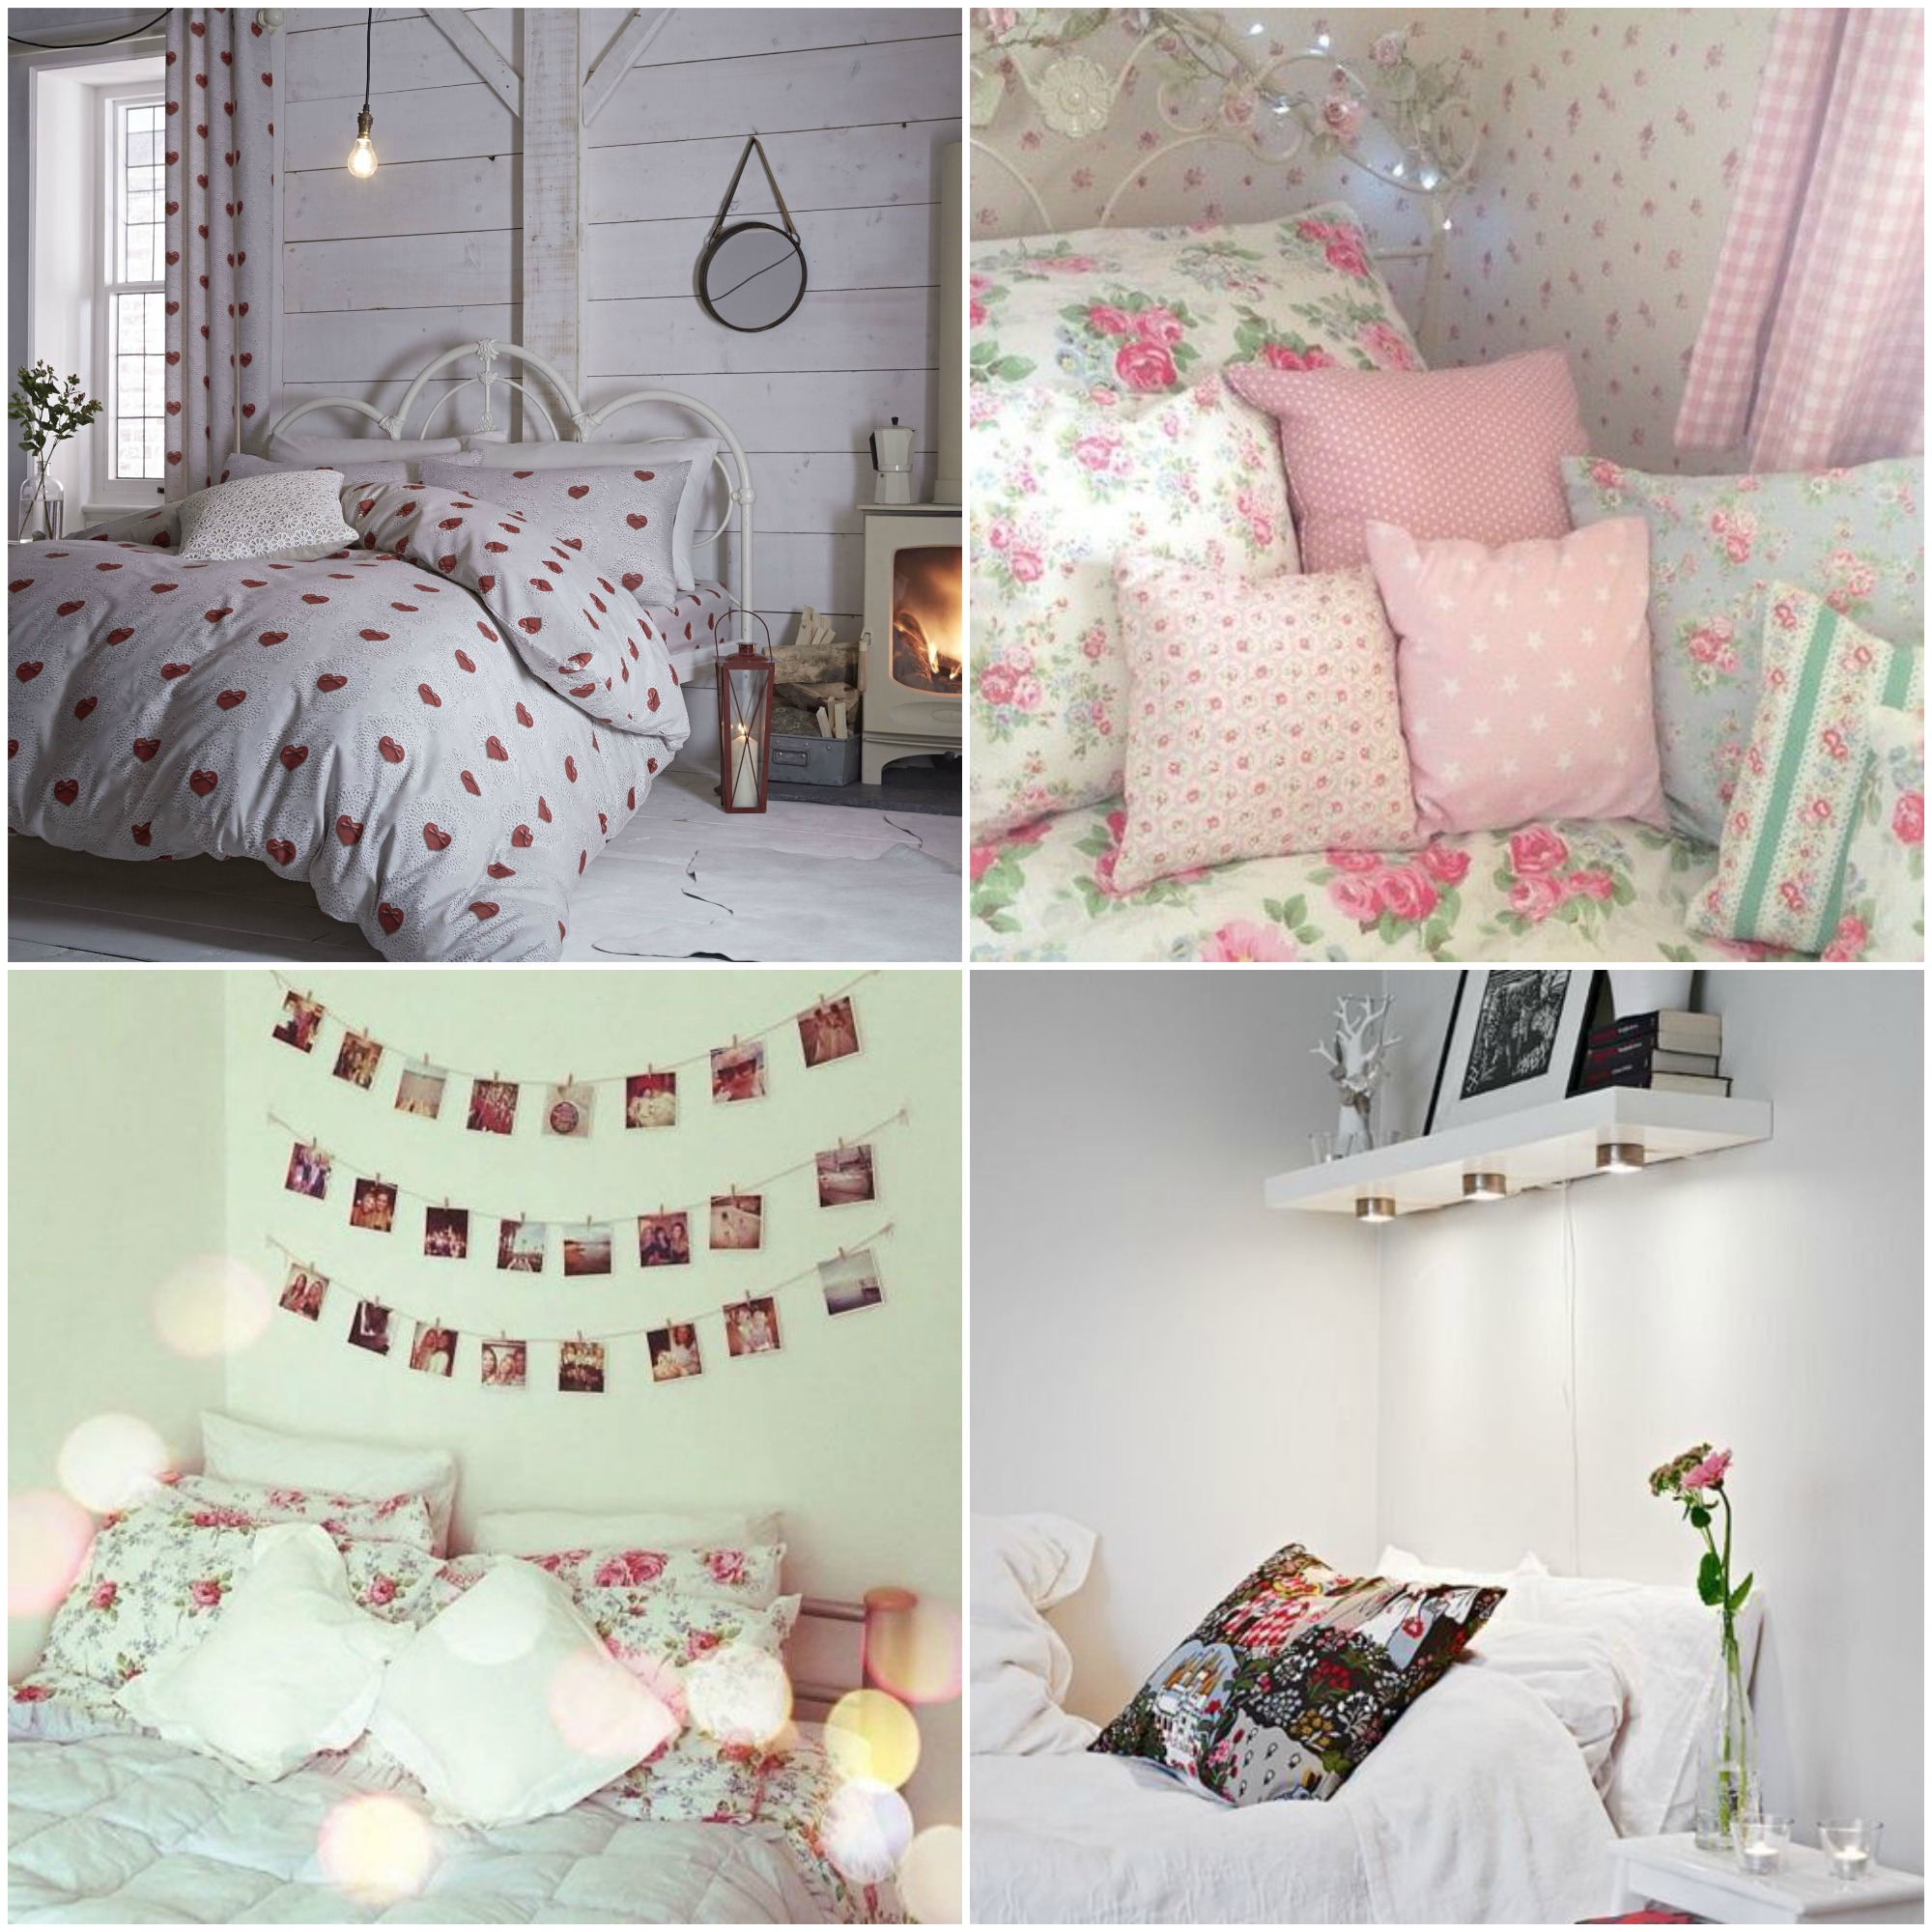 Lifestyle How to a Pinterest worthy bedroom